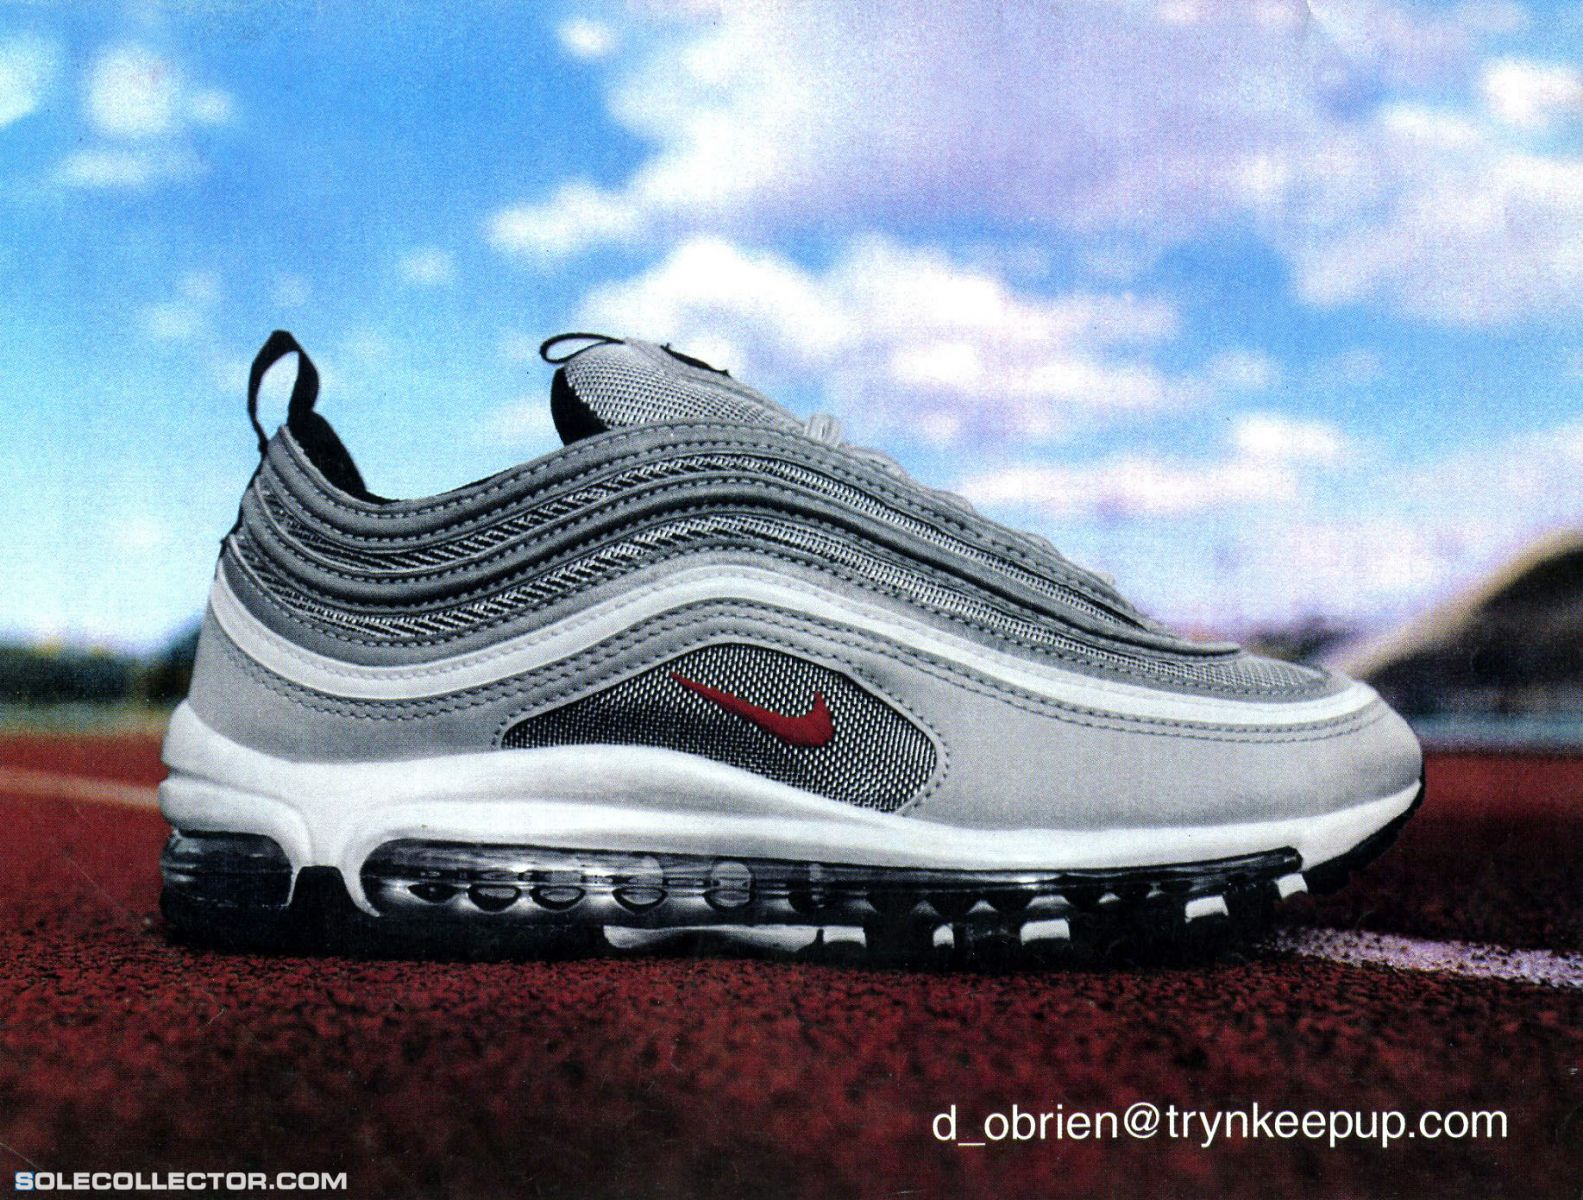 promo code 1d3f3 d944f This week s Vintage Ad feature takes a look at the original Air Max 97.